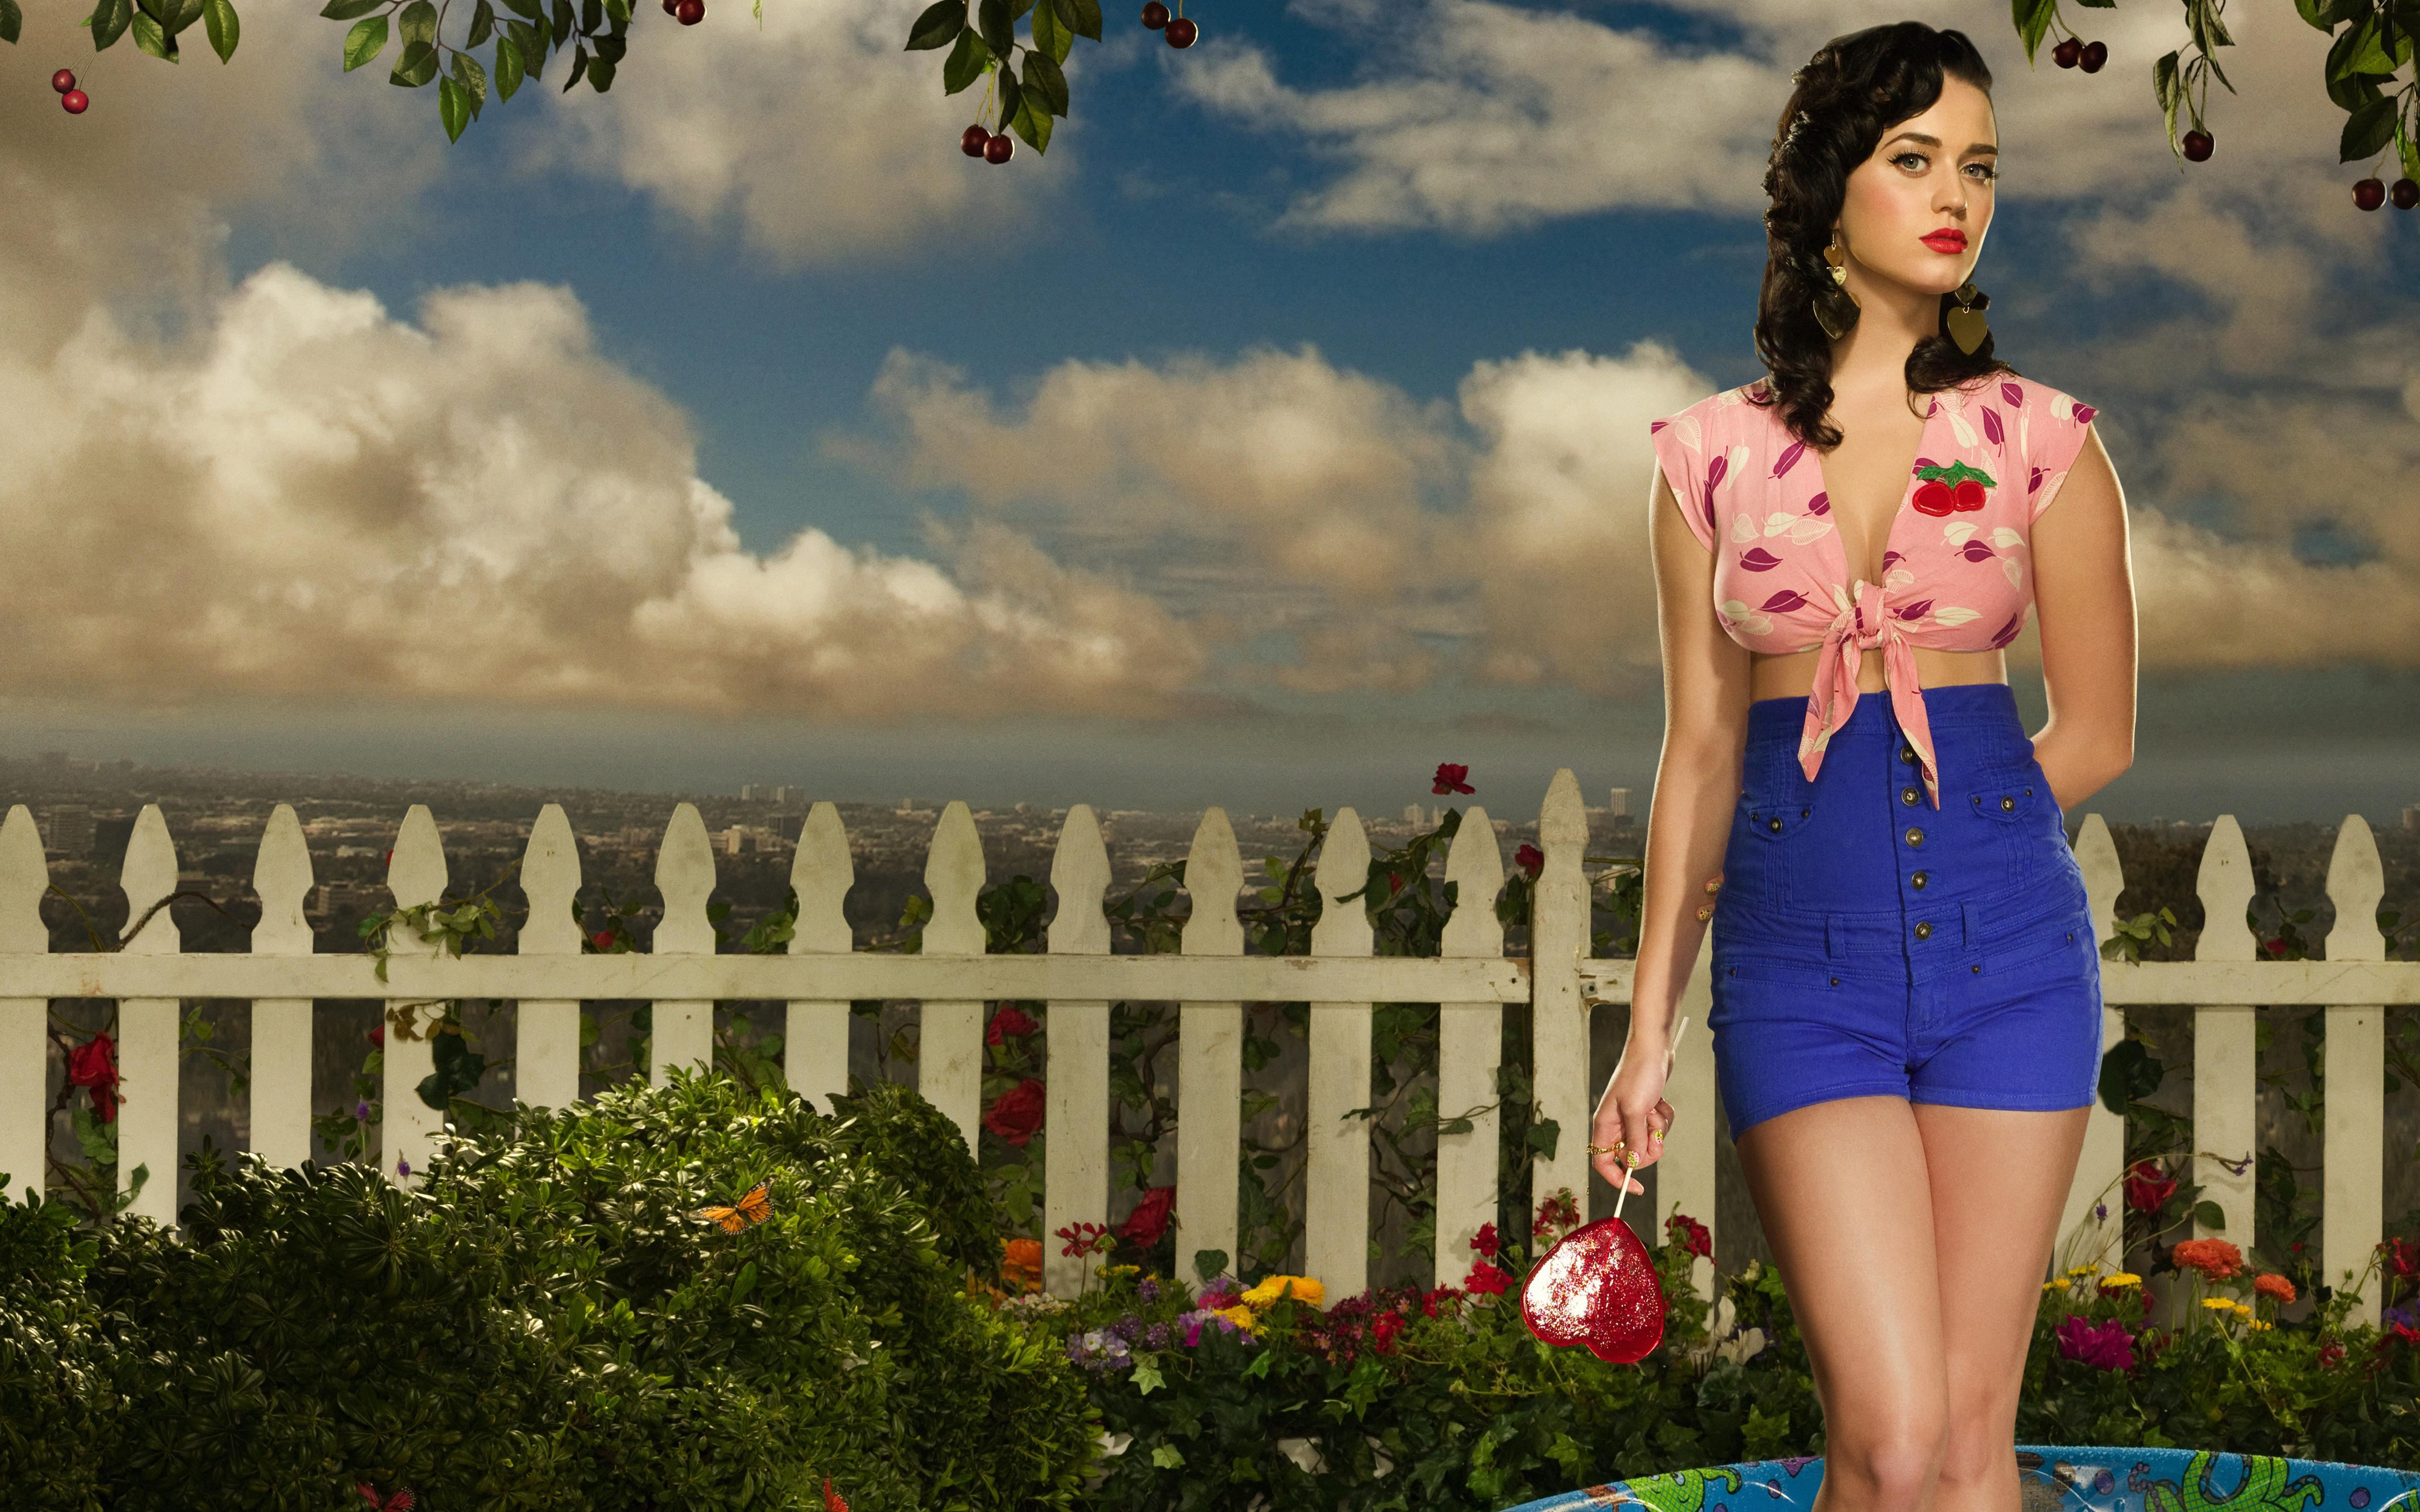 Katy Perry 2012 Album wallpaper